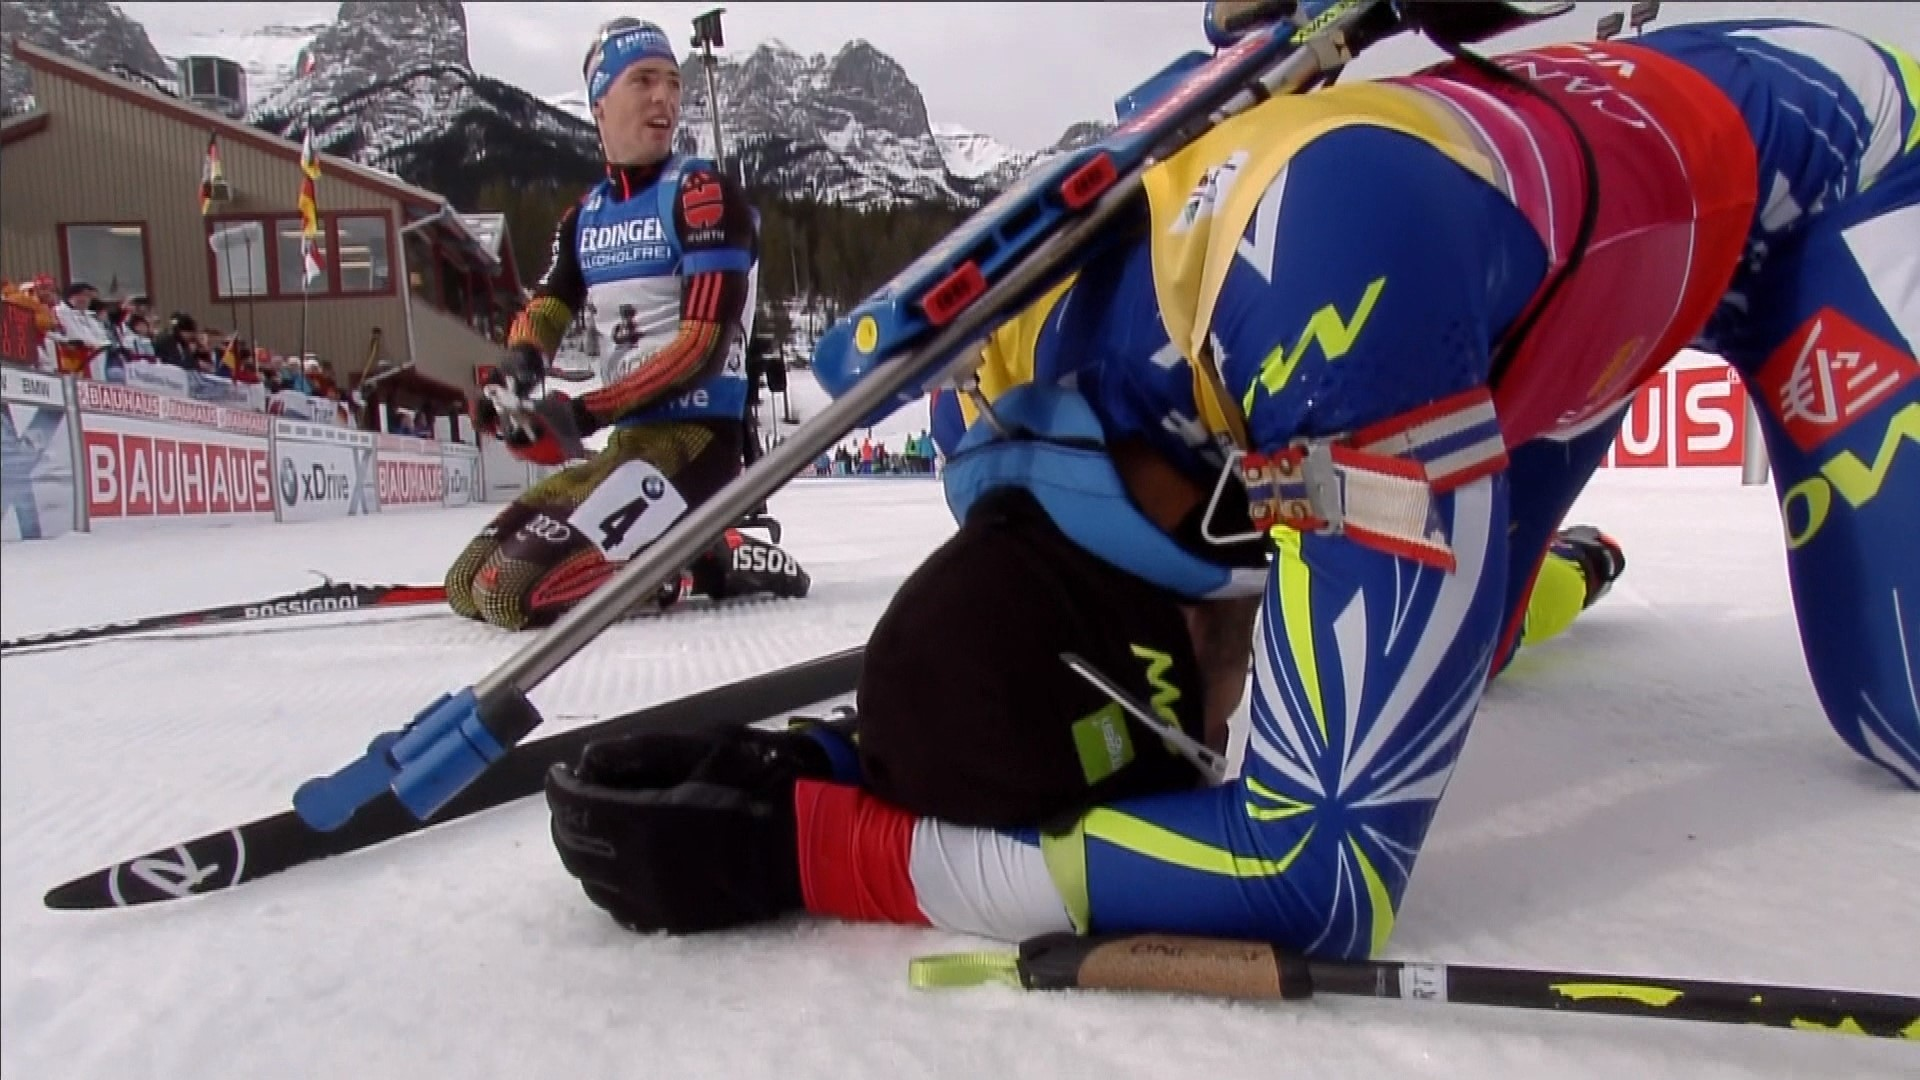 Canmore - Sprint finish Fourcade and Shipulin